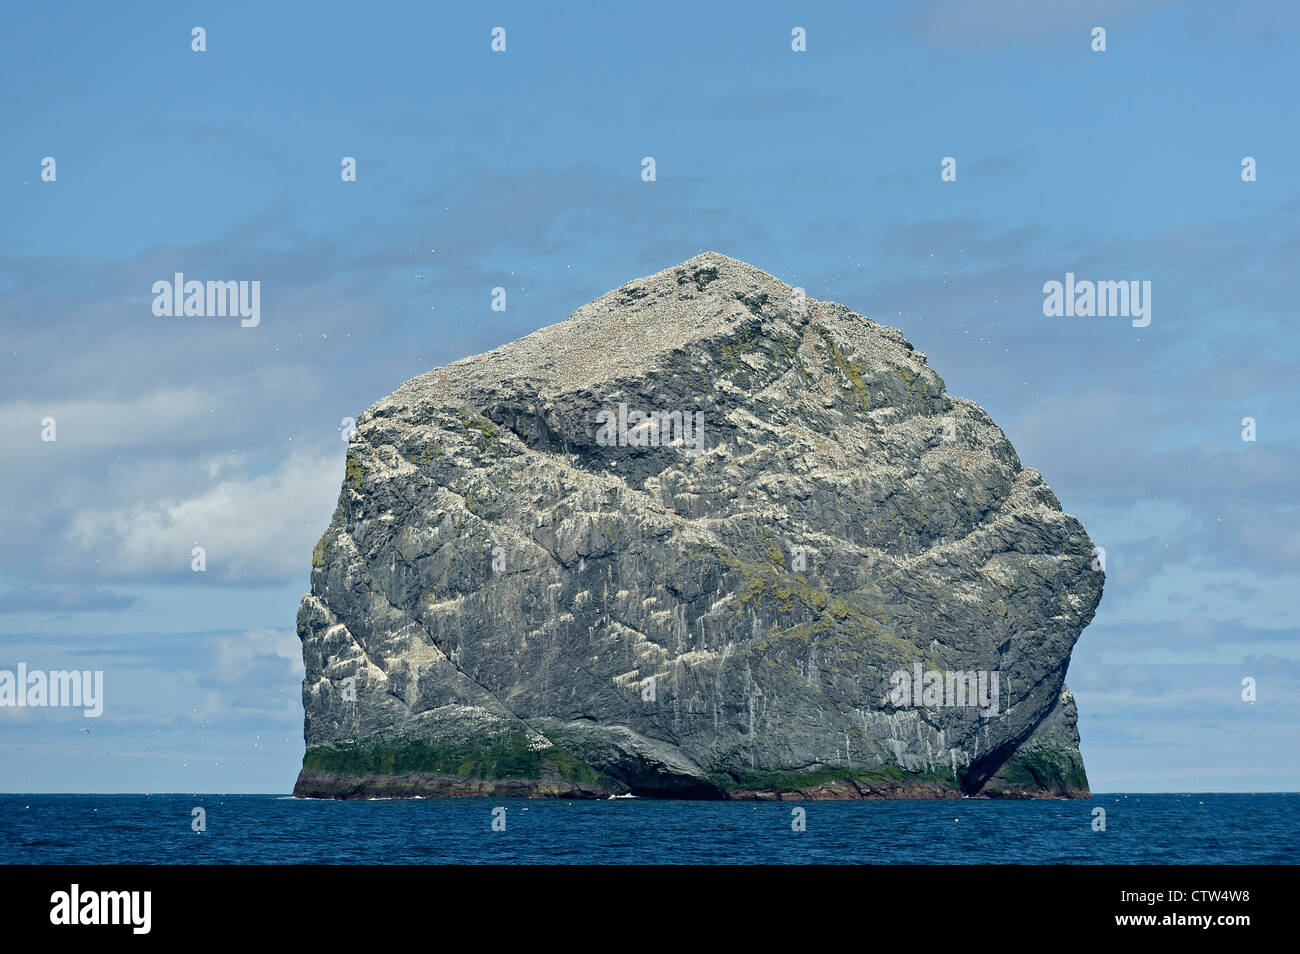 Stac Lee in the Saint KIlda archipelago, with nesting colony of northern gannets (Morus bassanus). Scotland. June. - Stock Image